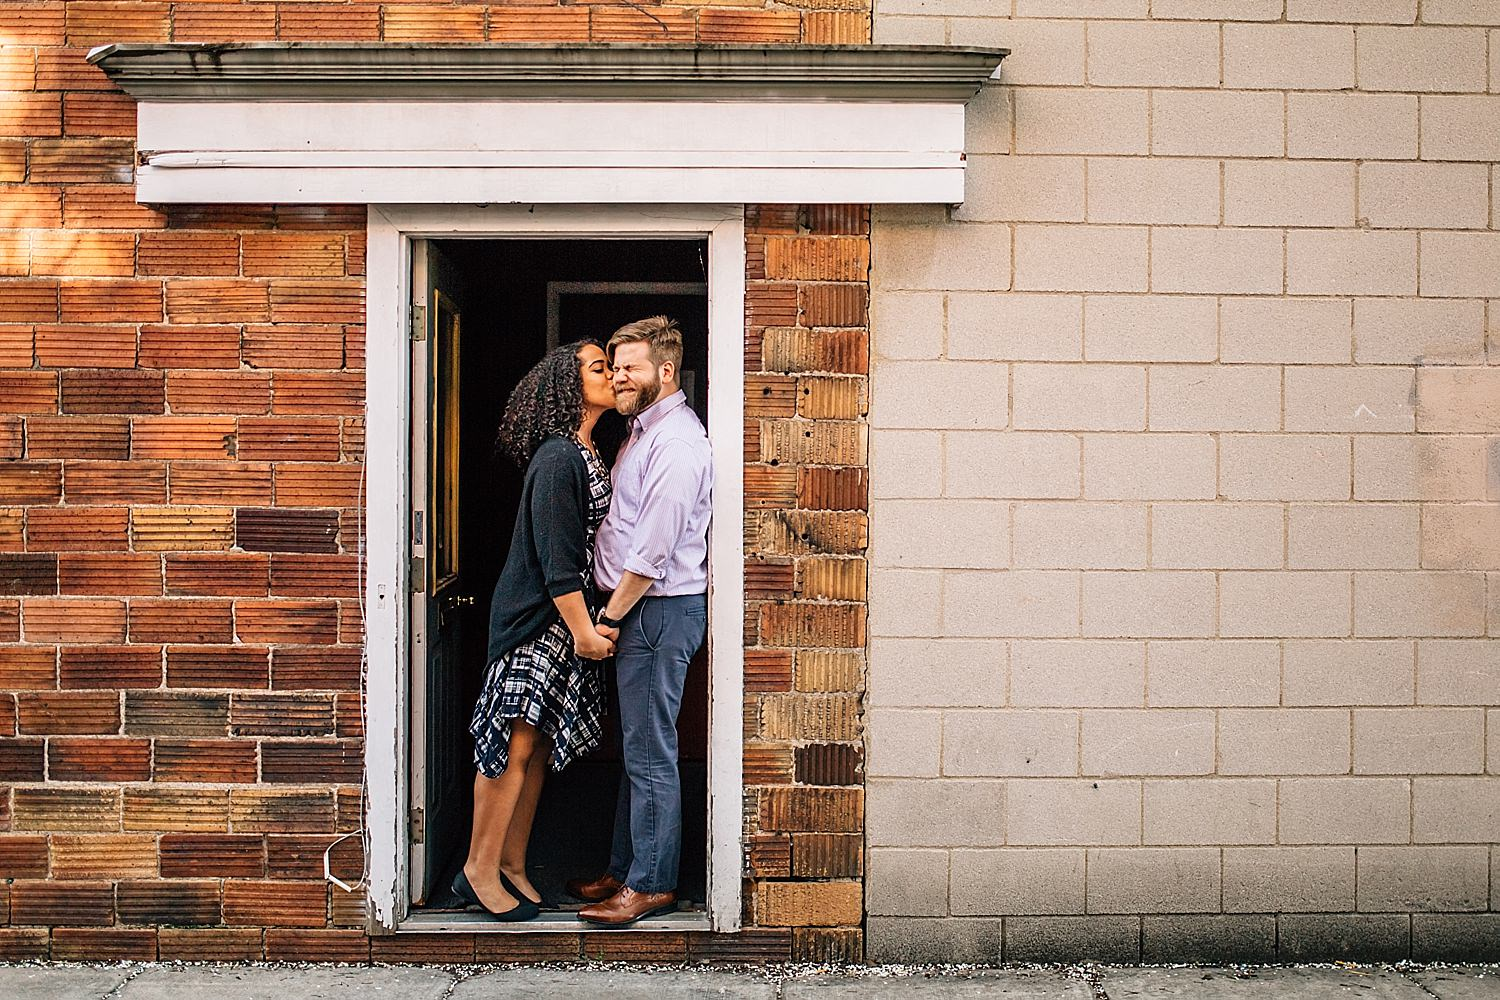 engagement photos taken outdoors in bowling green ohio